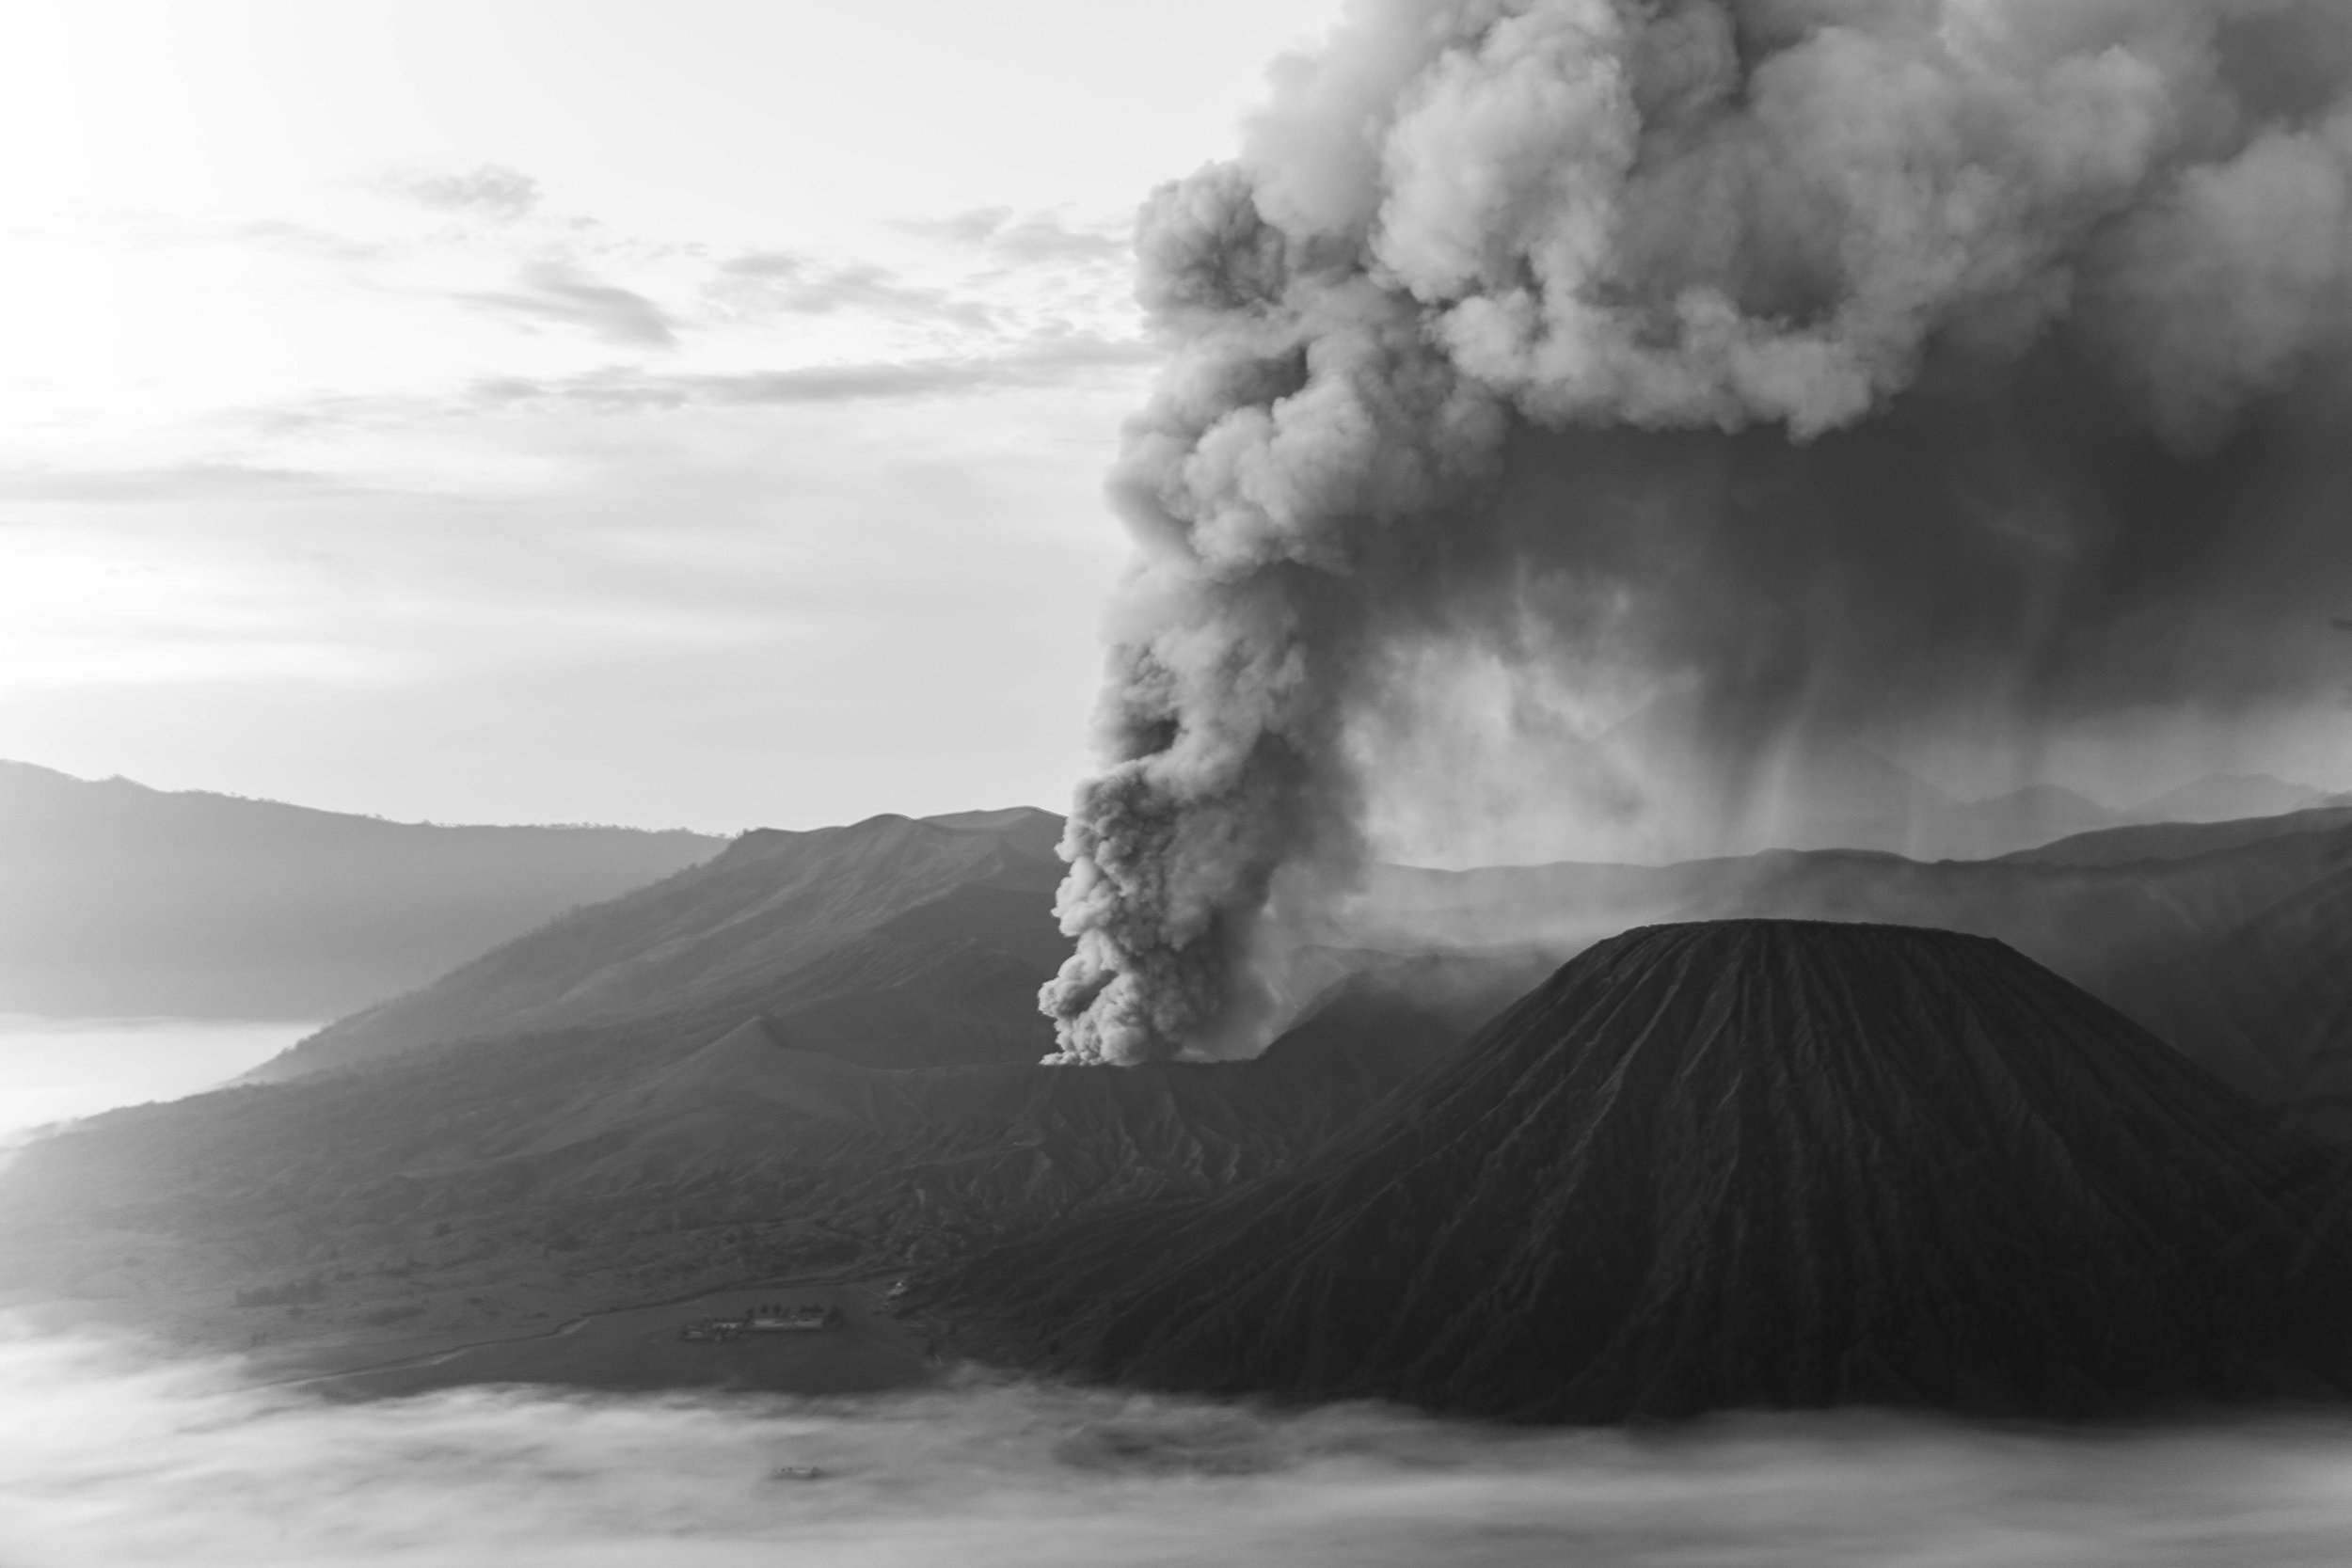 A view into the crater of Mount Bromo during heightened volcanic activity.